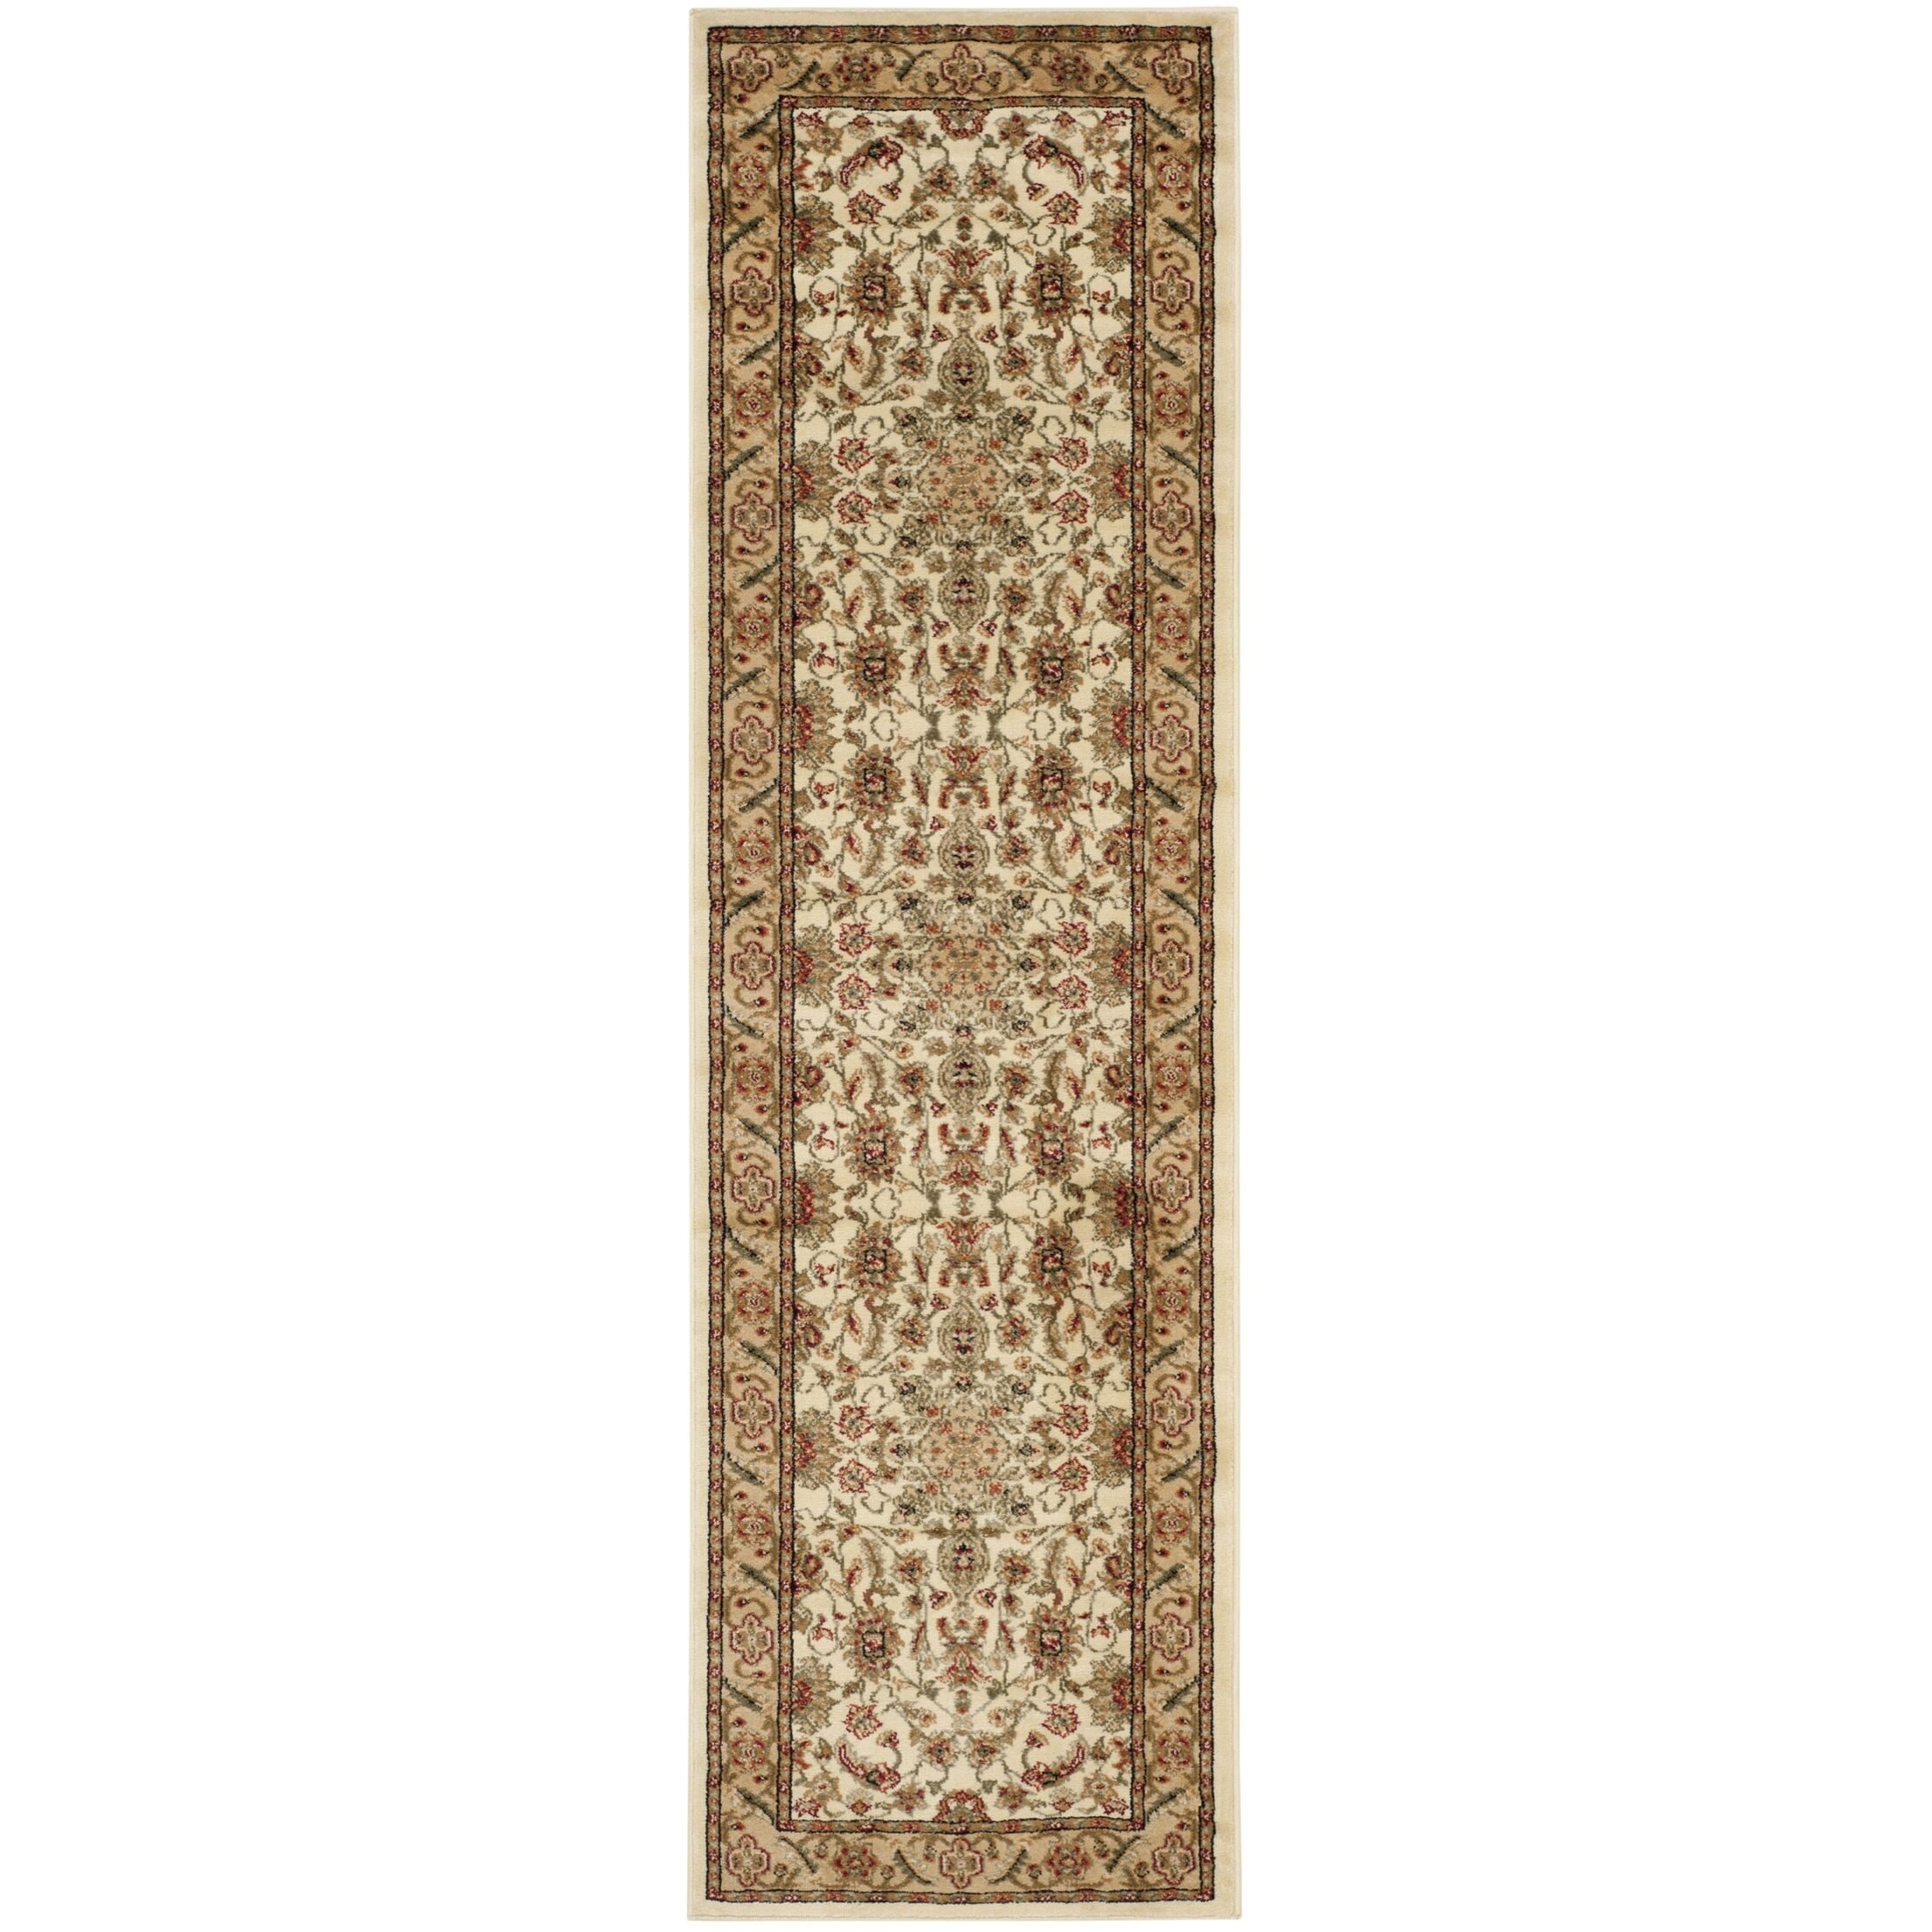 Ottis Cream/Tan Area Rug Rug Size: Runner 2'3